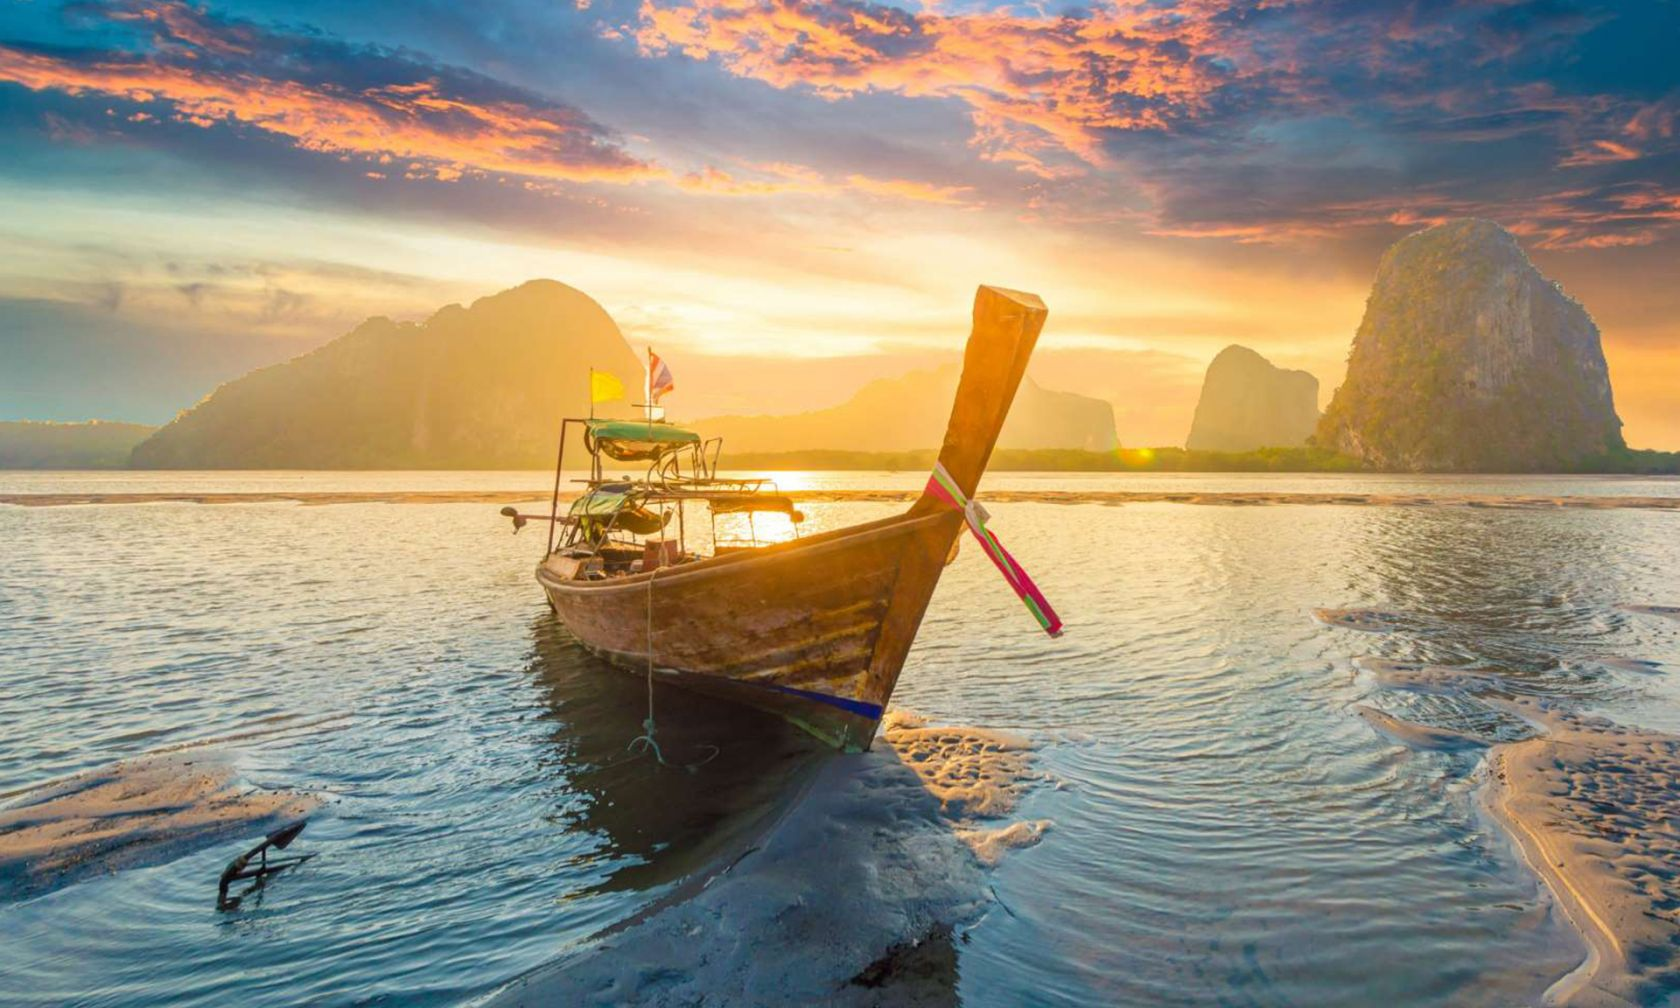 Speak to Our Private Journey Experts about Your Perfect Asia Trip